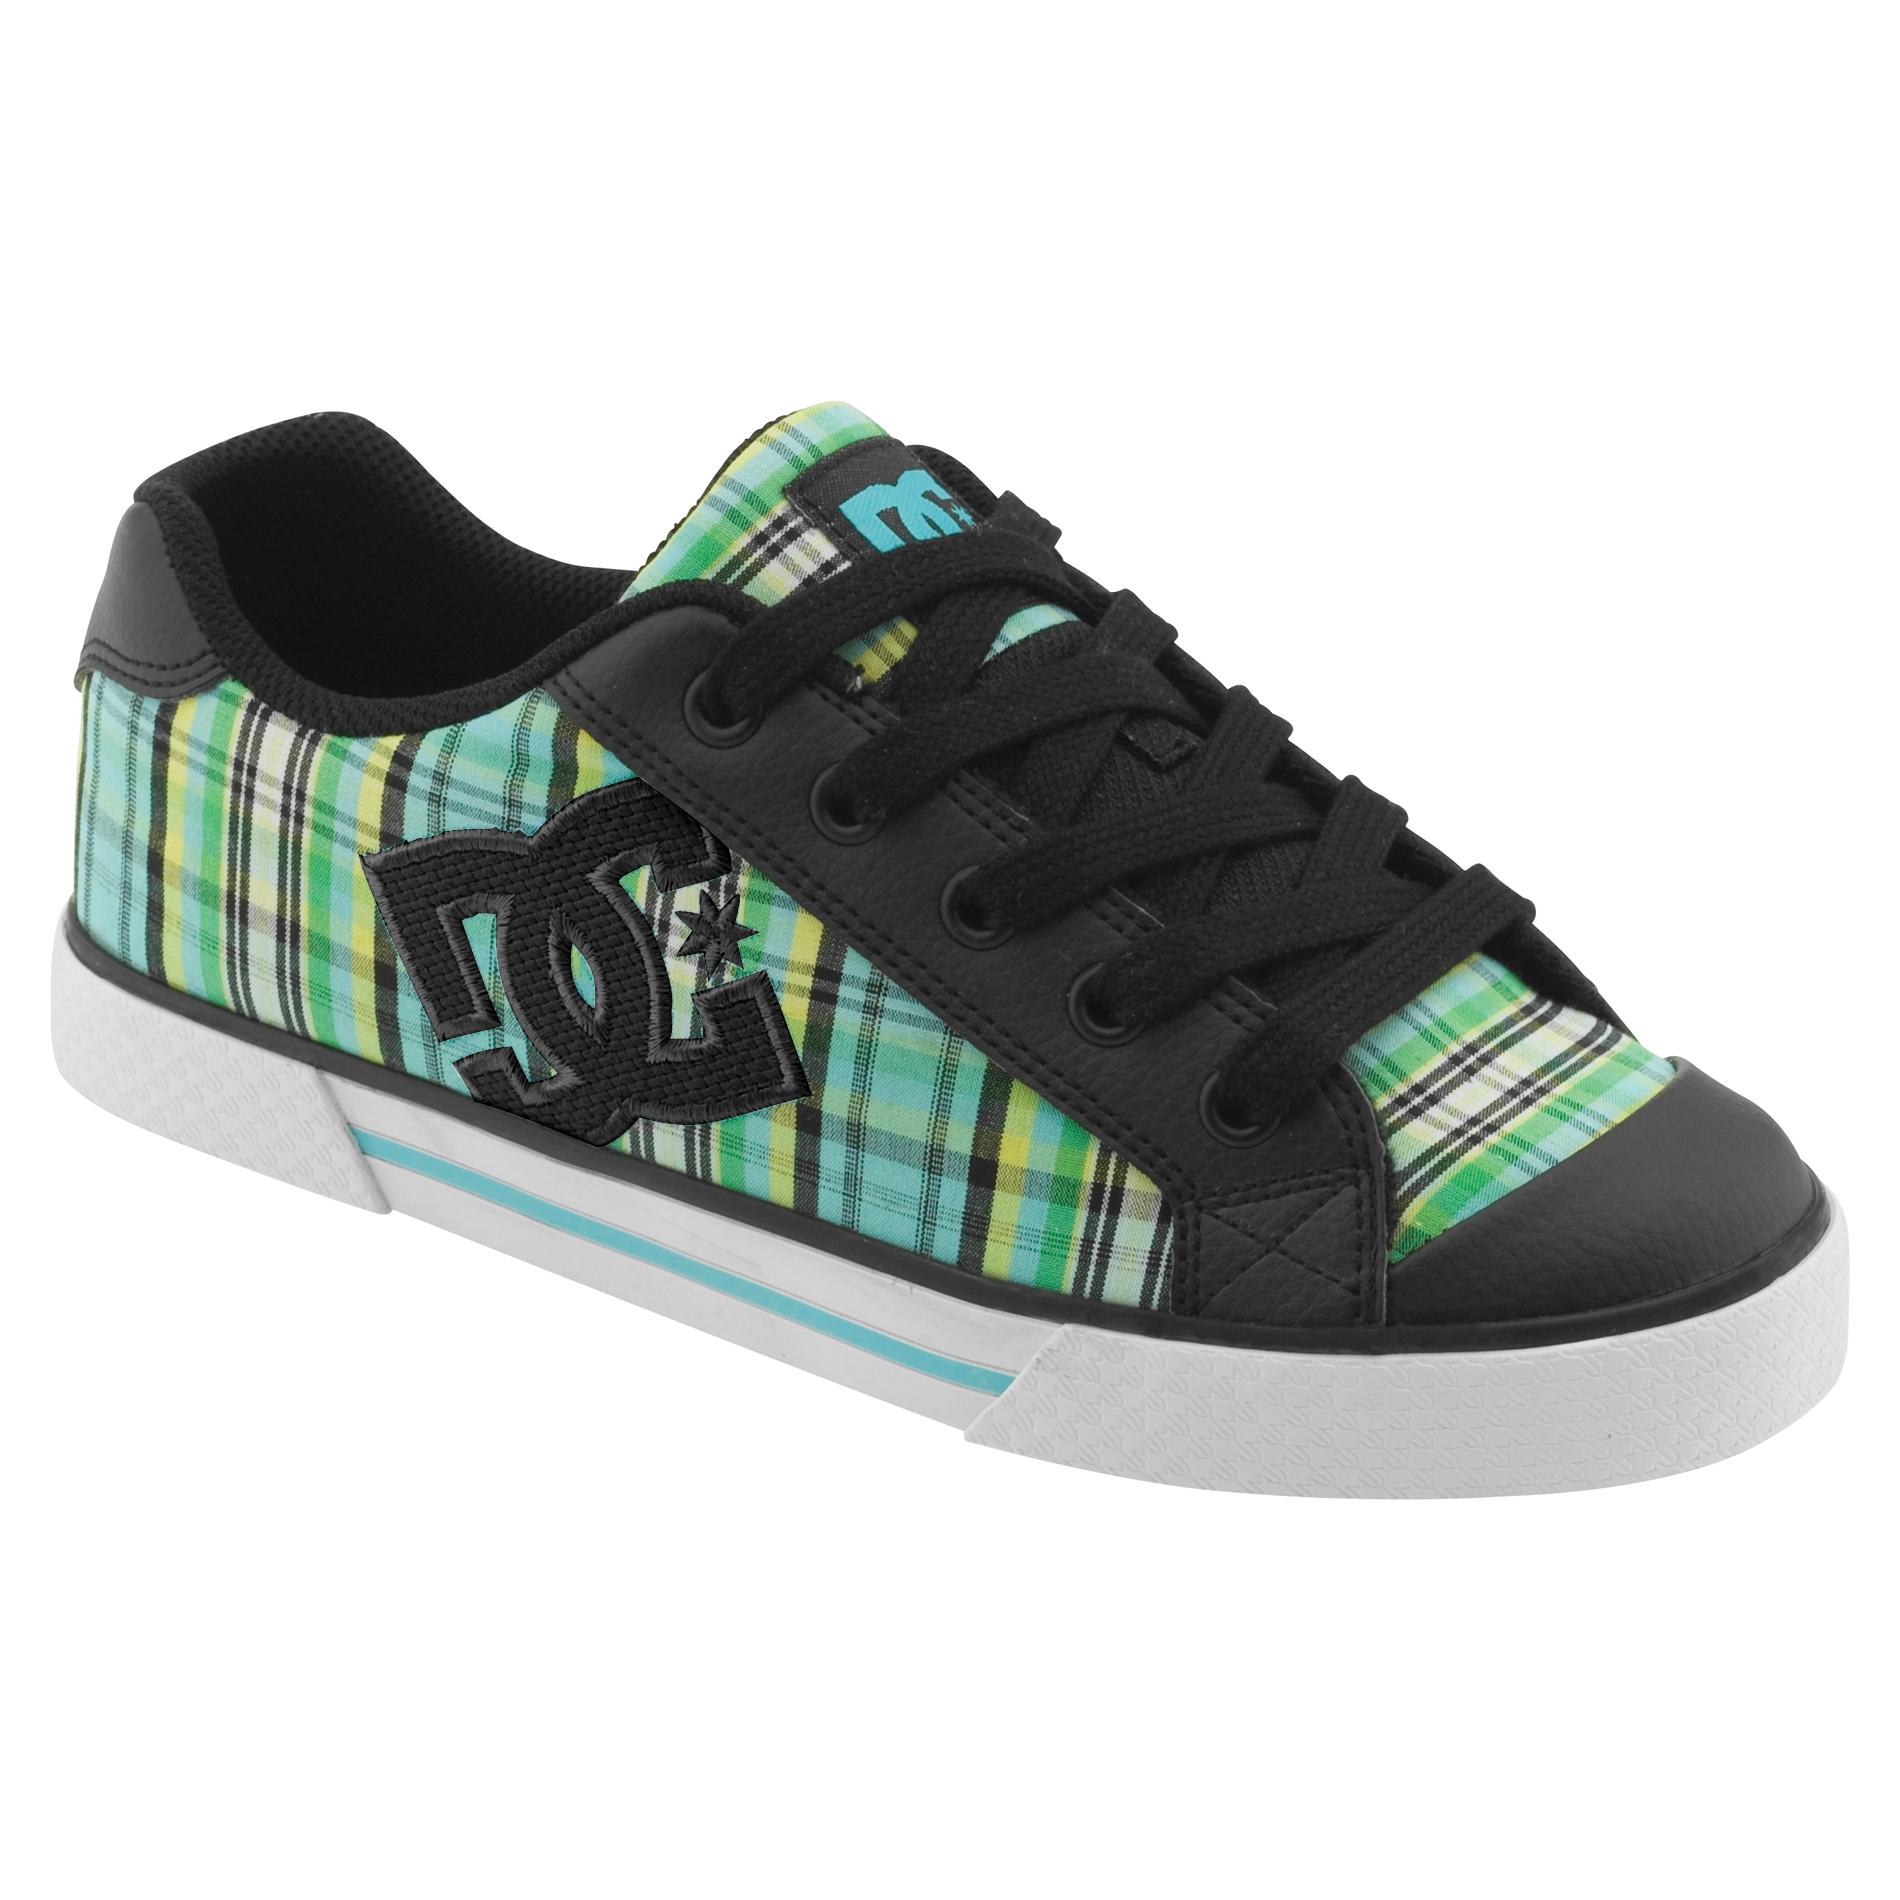 pin dc shoes chaussures chelsea femme noir ocean plaid. Black Bedroom Furniture Sets. Home Design Ideas